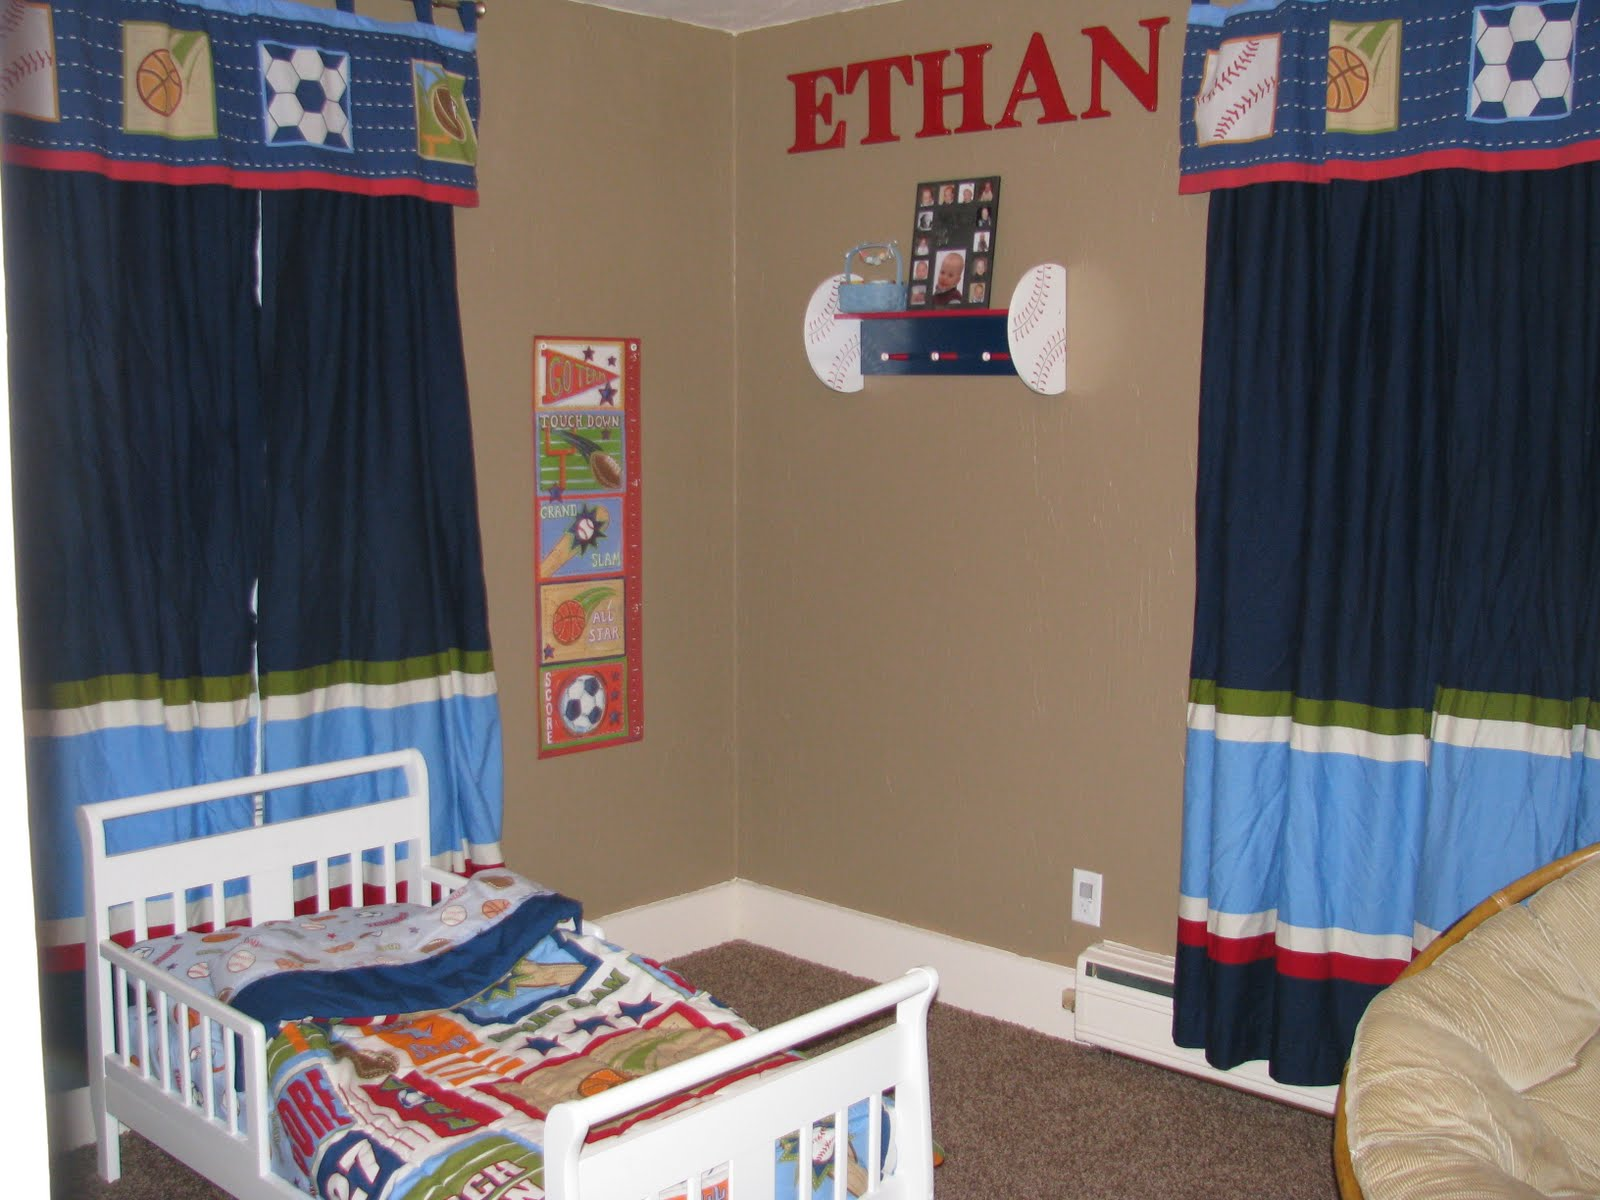 Boys Sports Bedroom And Here S Ethan New Toddler We Chose A Theme